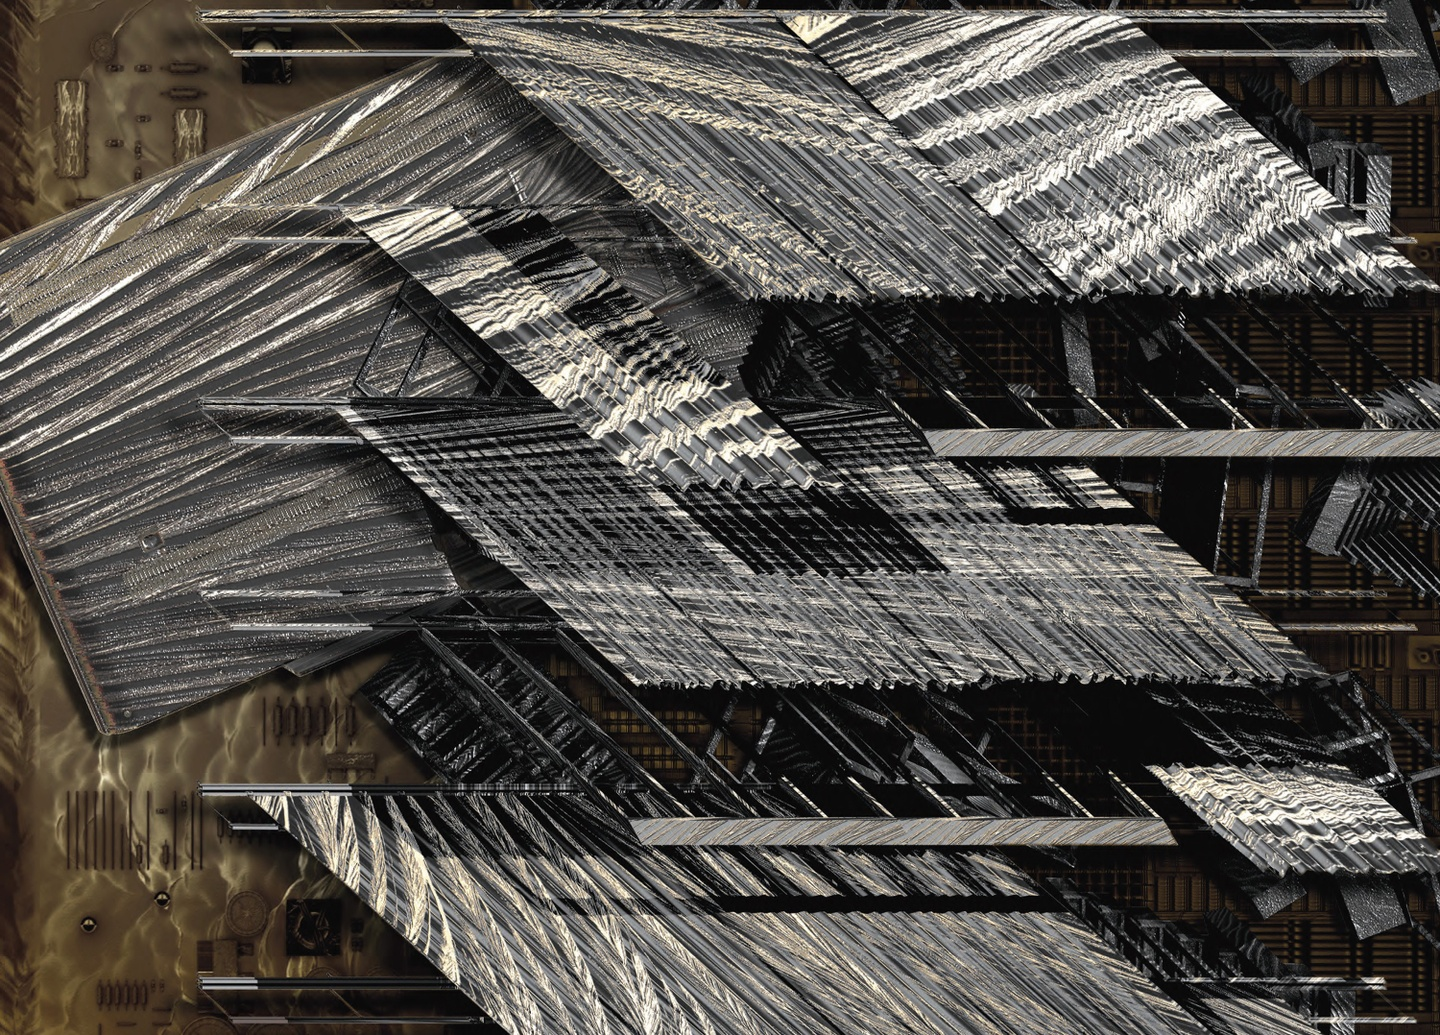 Detail view of a digitally rendered image of several silver-colored rectangles with textured surfaces, set against a pewter background.